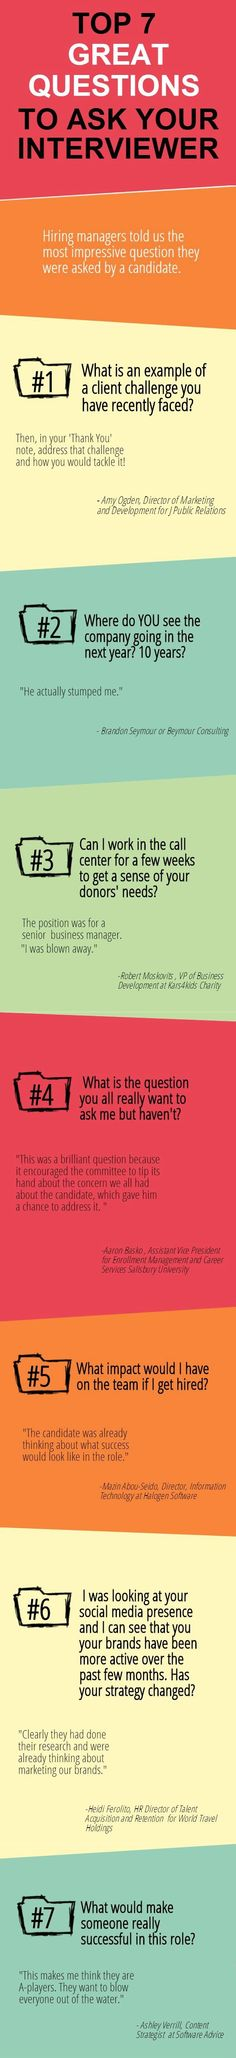 Top 7 great questions to ask your Interviwer